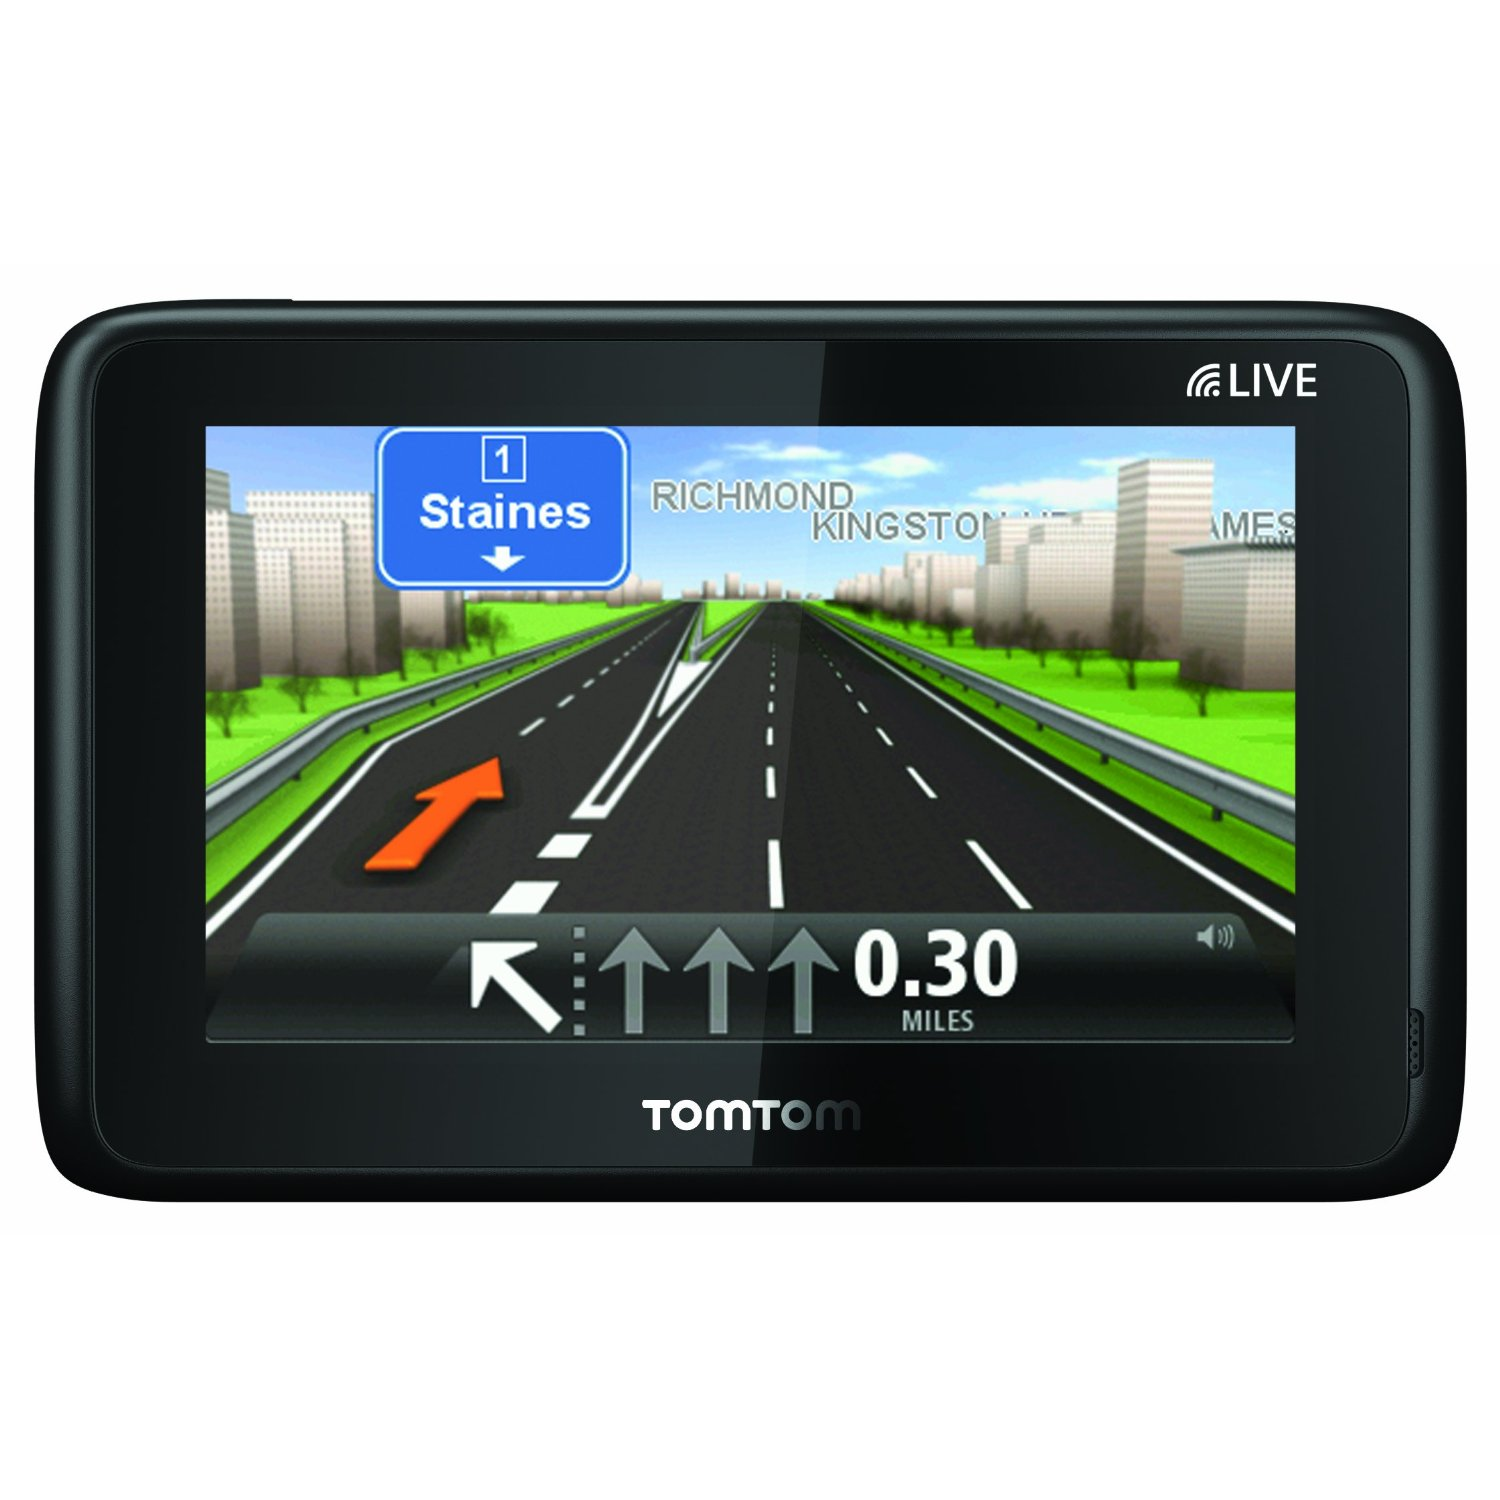 tomtom go live 1000 uk ireland maps gps sat nav system 4 3 touch screen black ebay. Black Bedroom Furniture Sets. Home Design Ideas